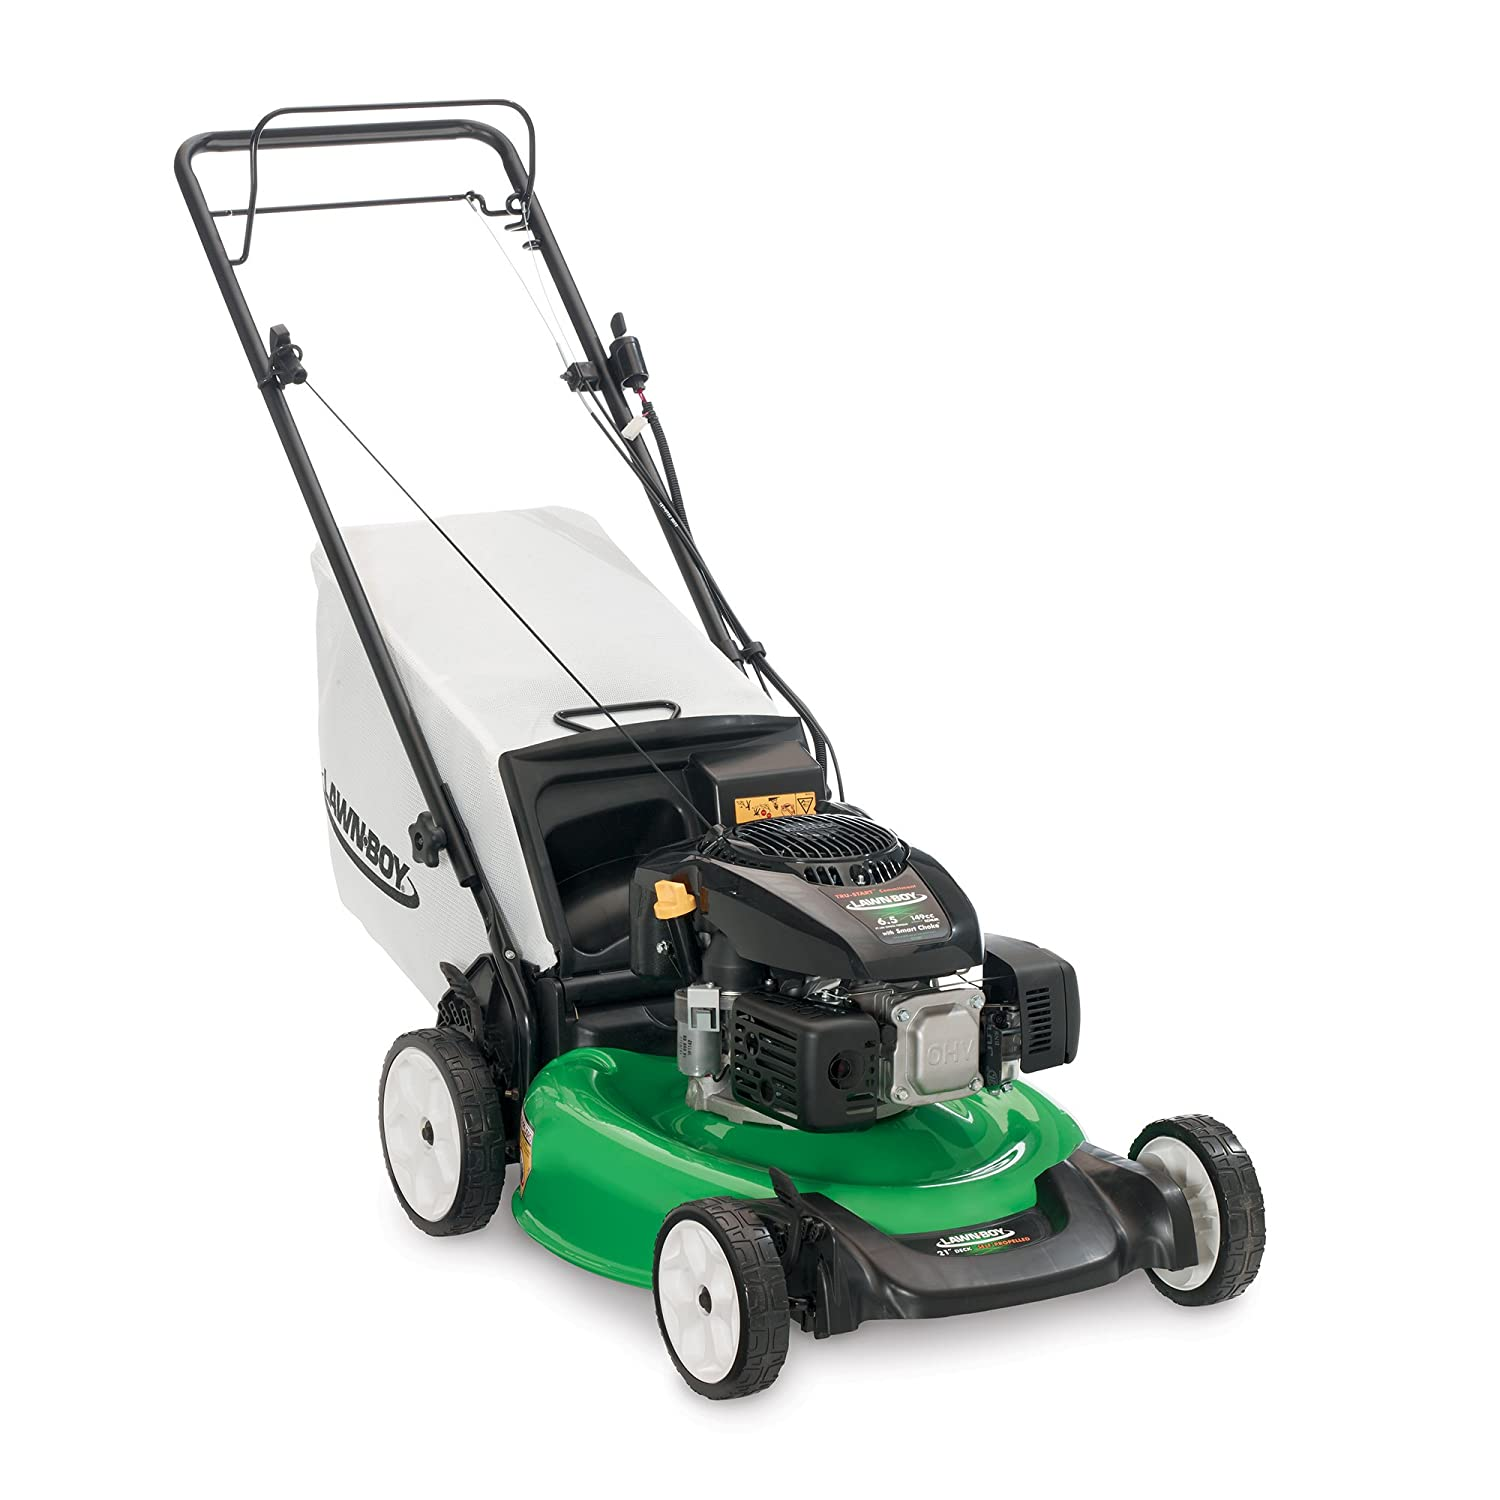 Lawn-Boy 10734 Kohler Electric Start